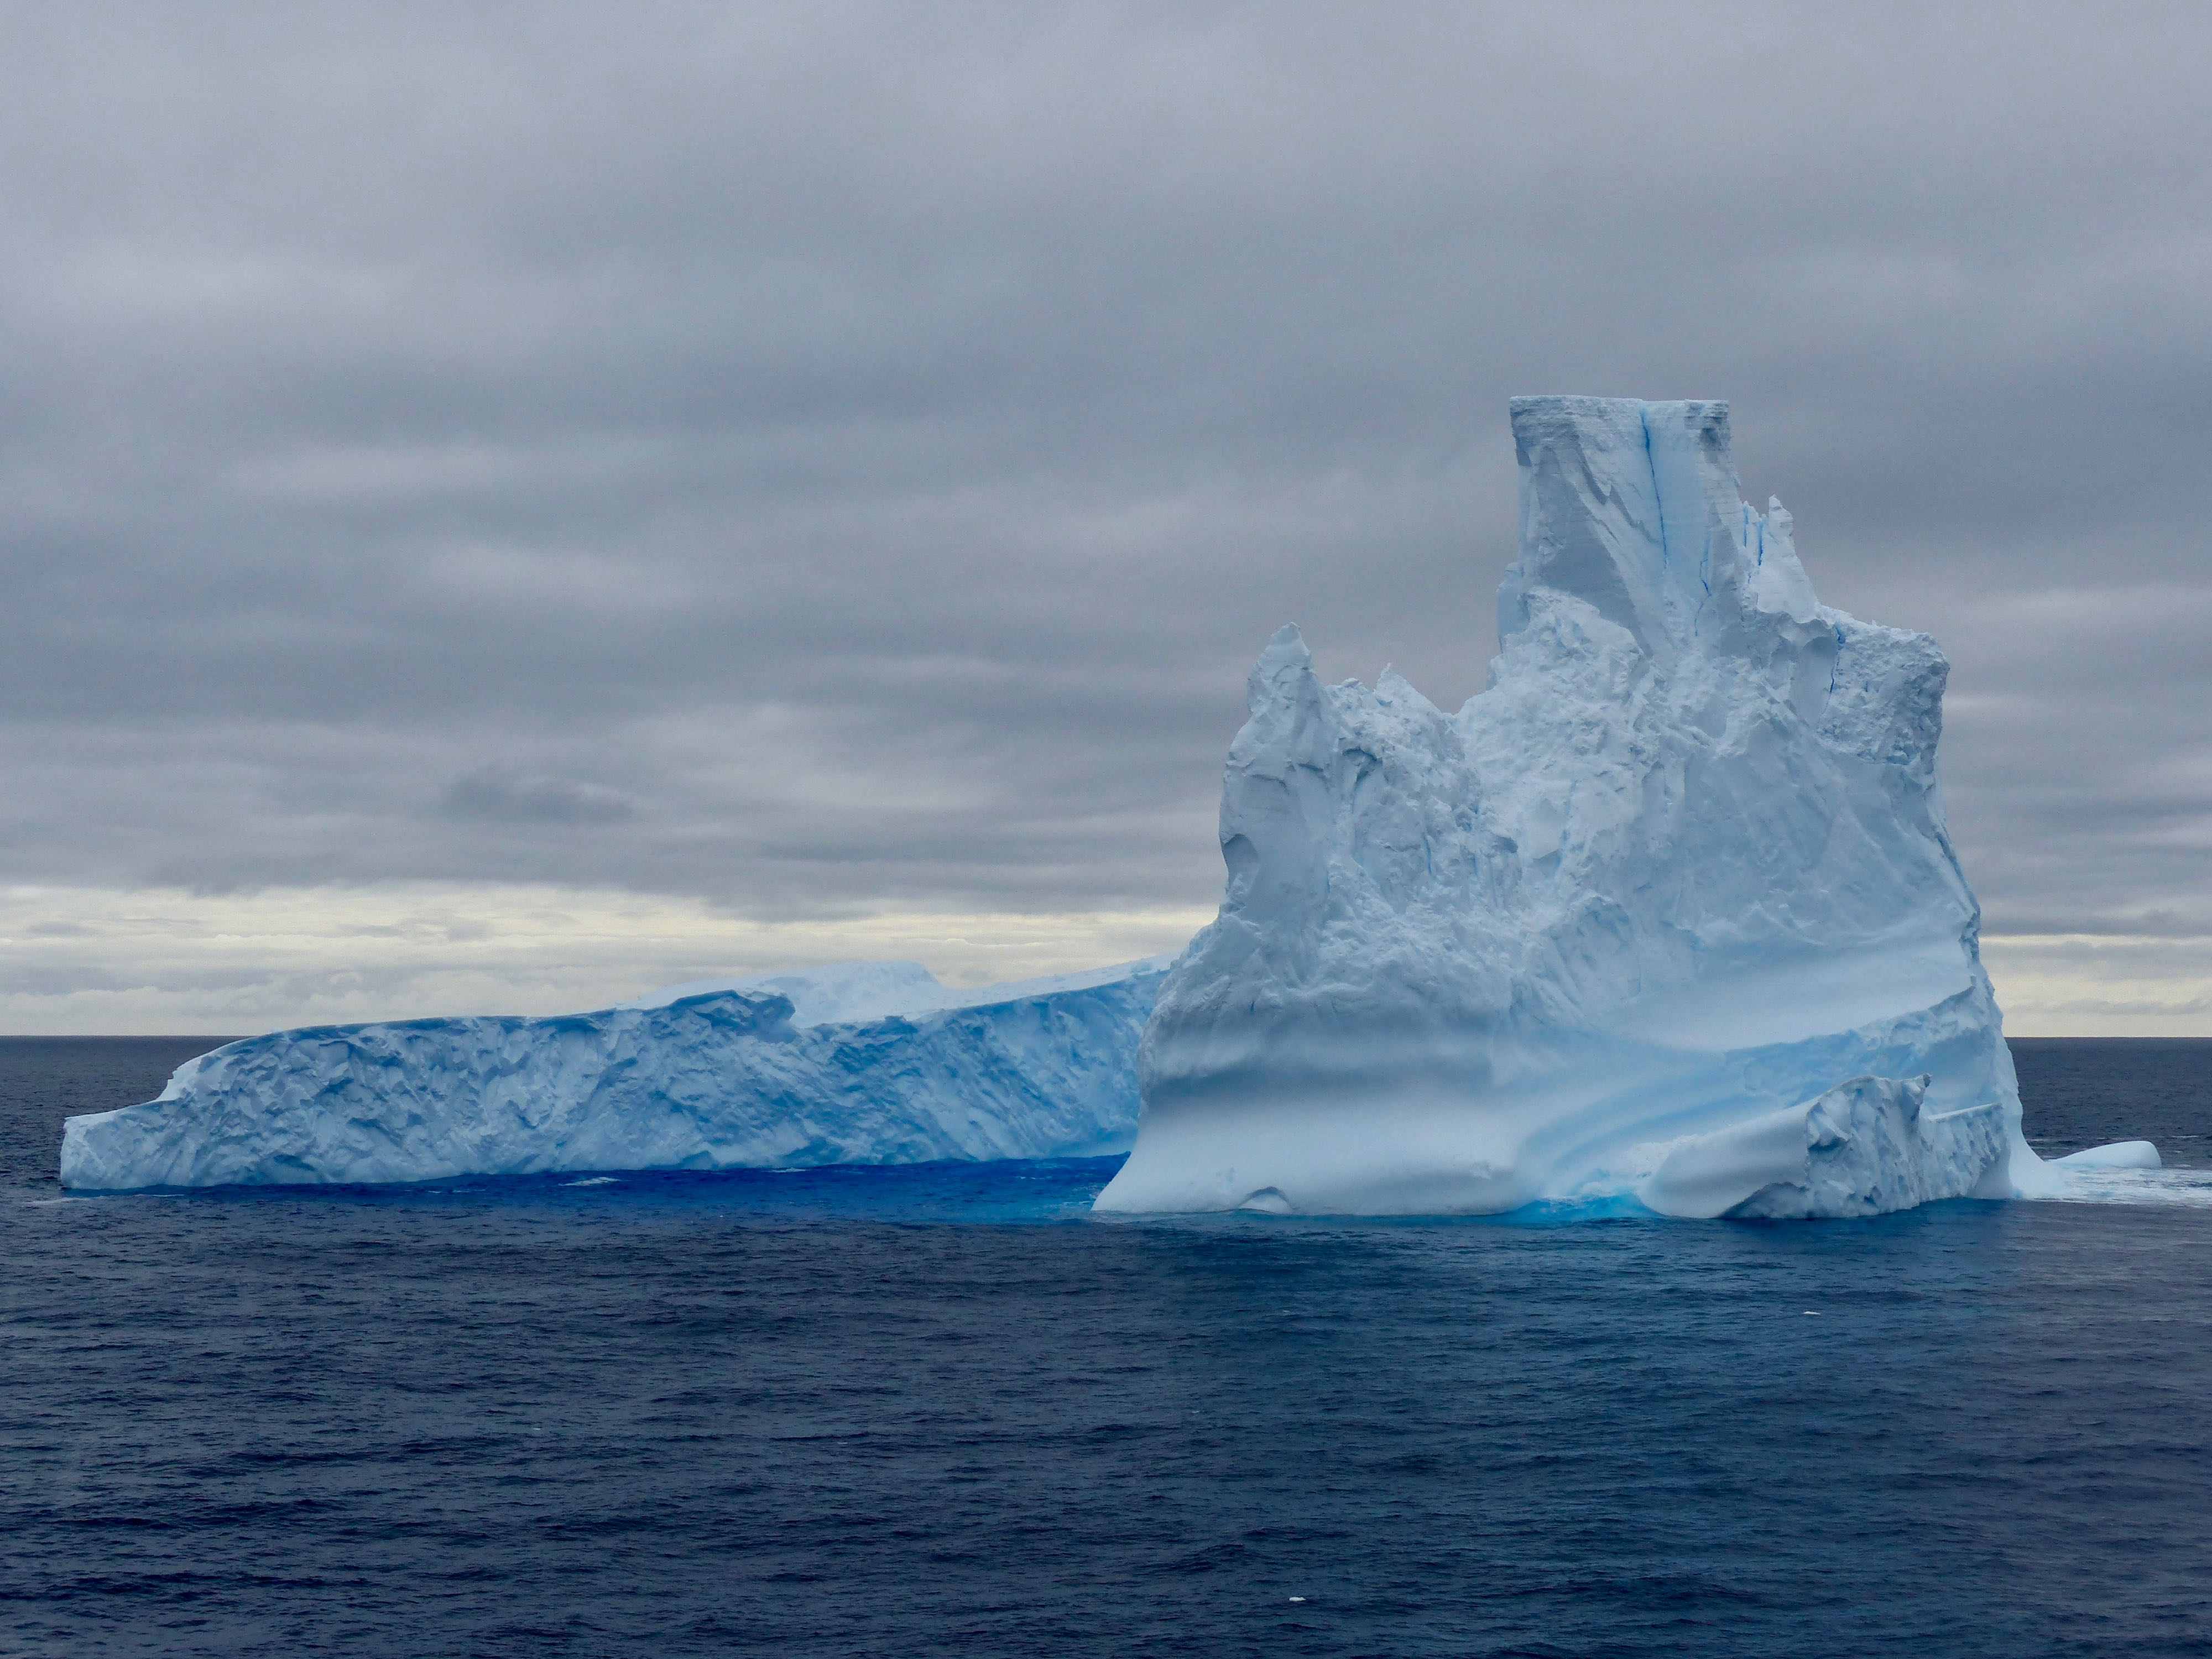 Iceberg seen in Antarctic waters.